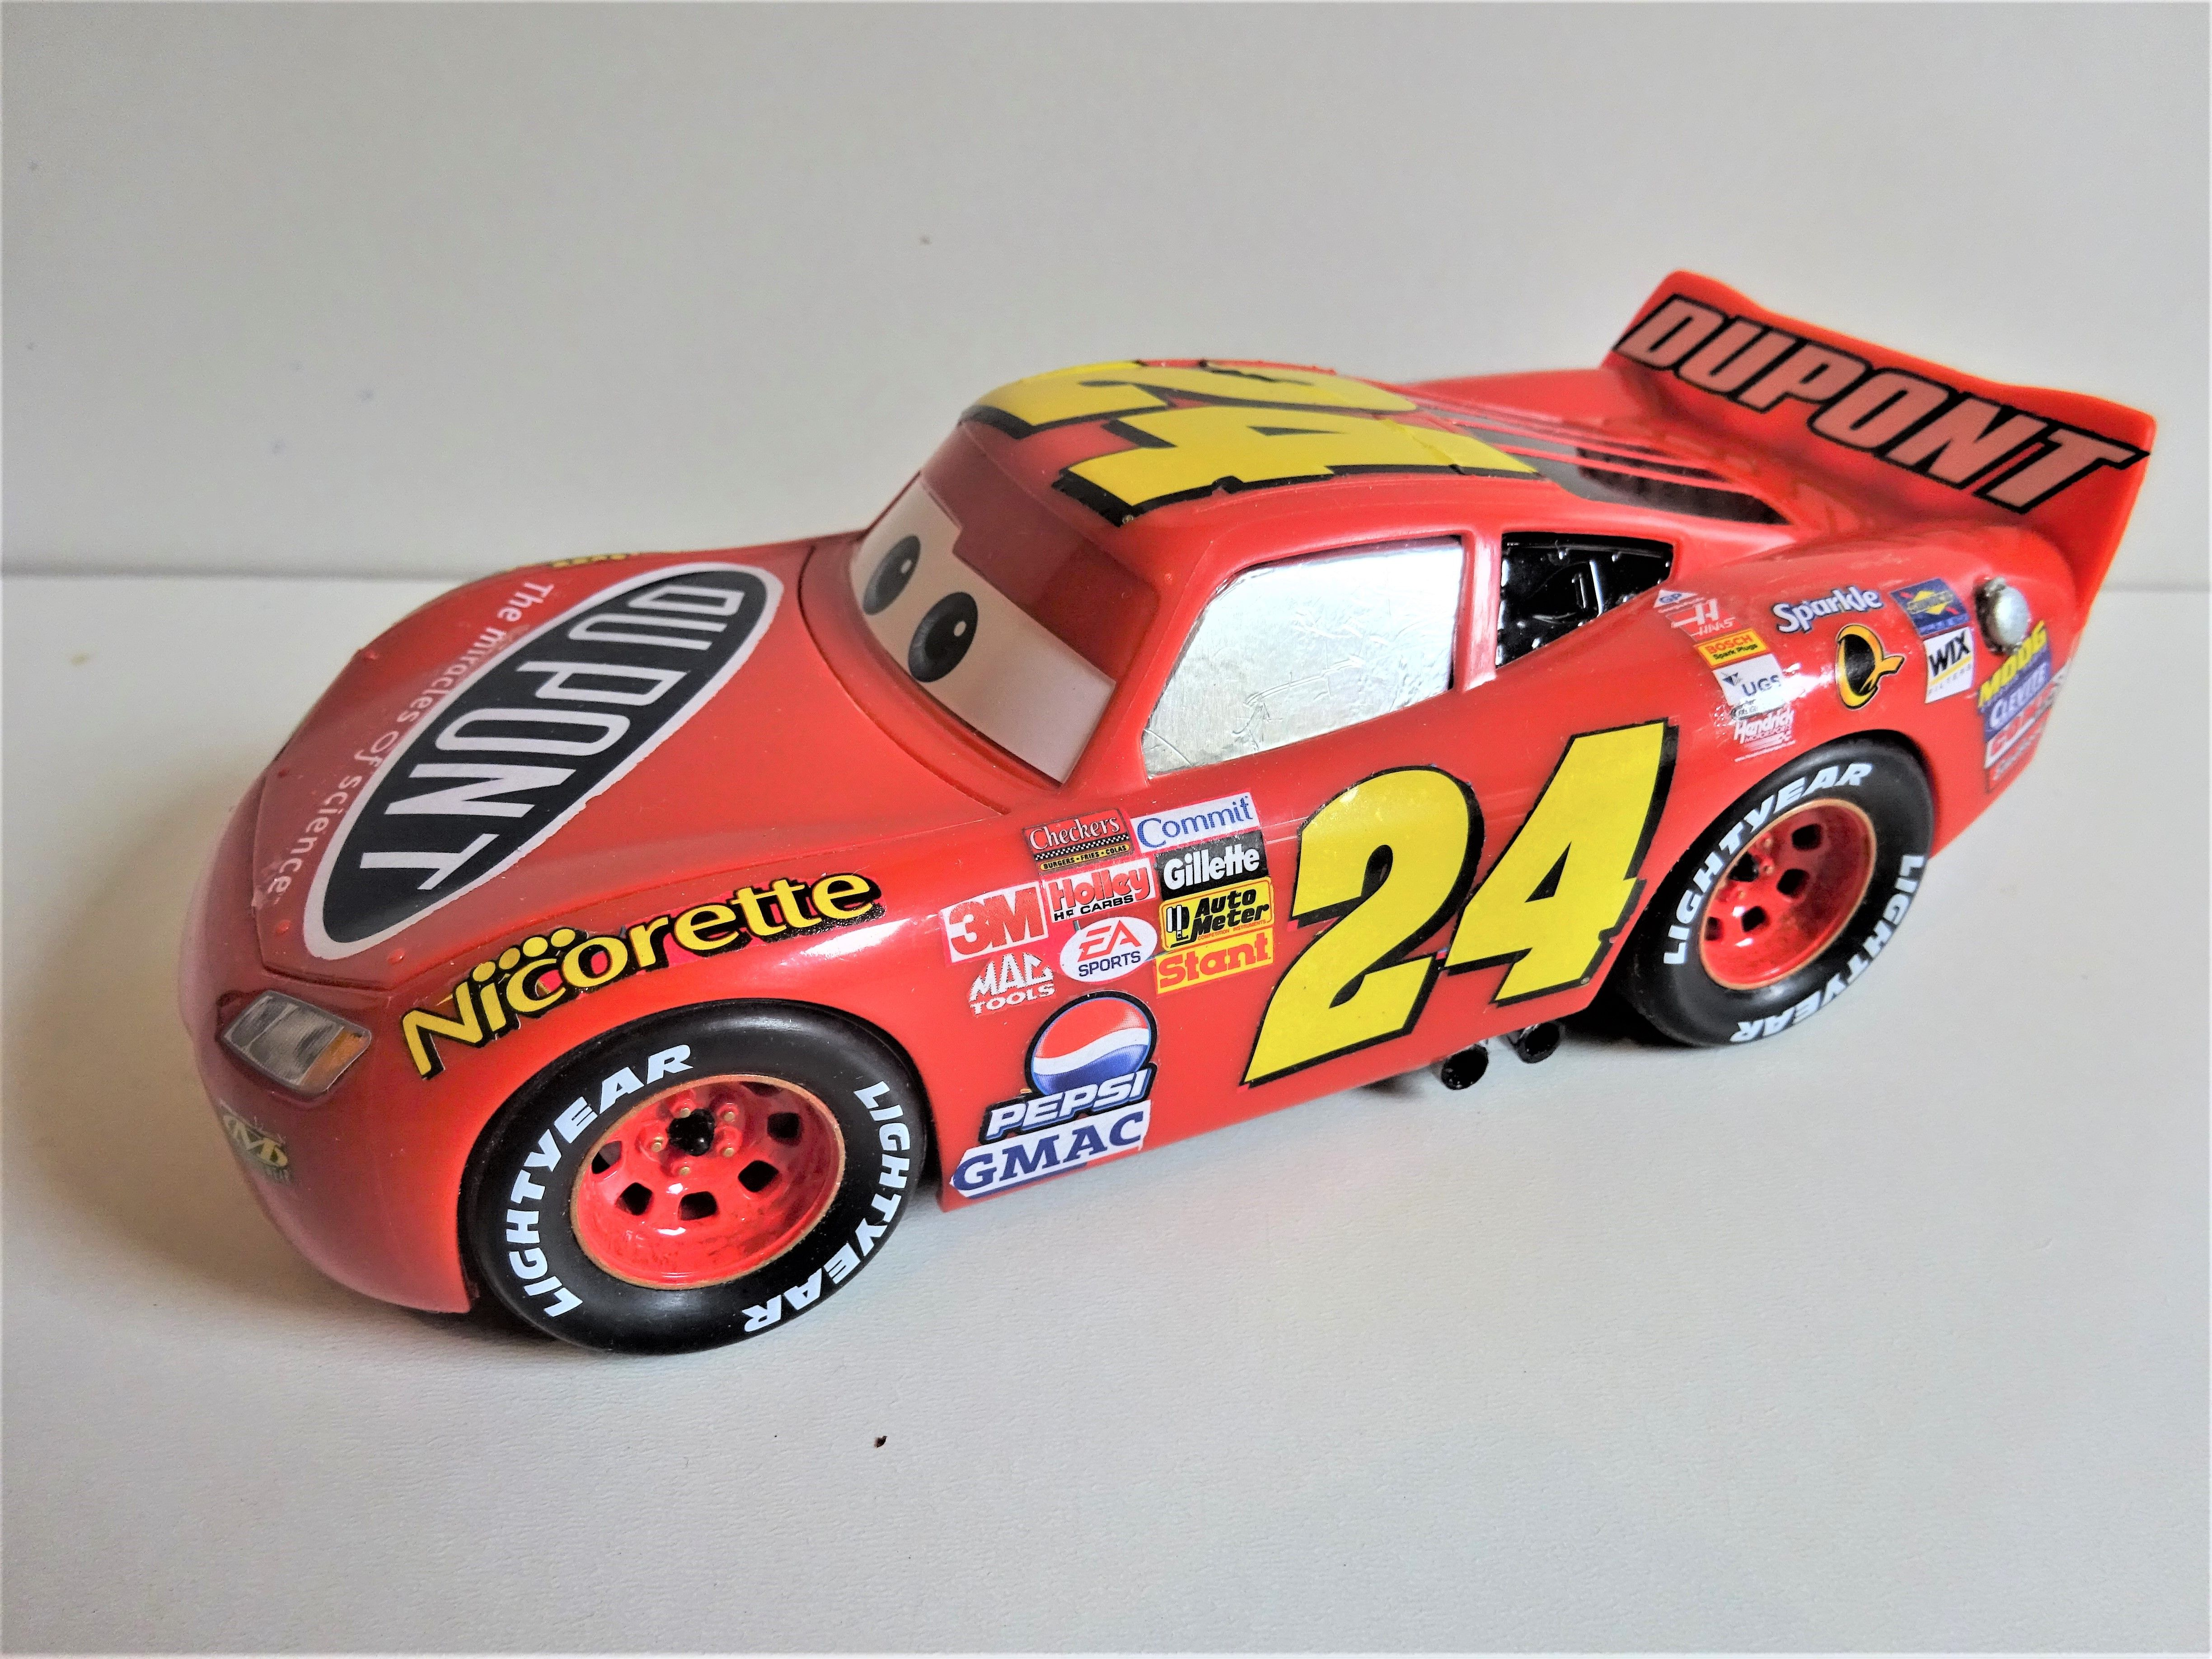 Revell Lightning Mcqueen Built Box Stock But Instead Of Using The Kit Stickers Or Decals I Found A Nascar Kit With A Scale Models Cars Car Model Diecast Cars [ 3672 x 4896 Pixel ]